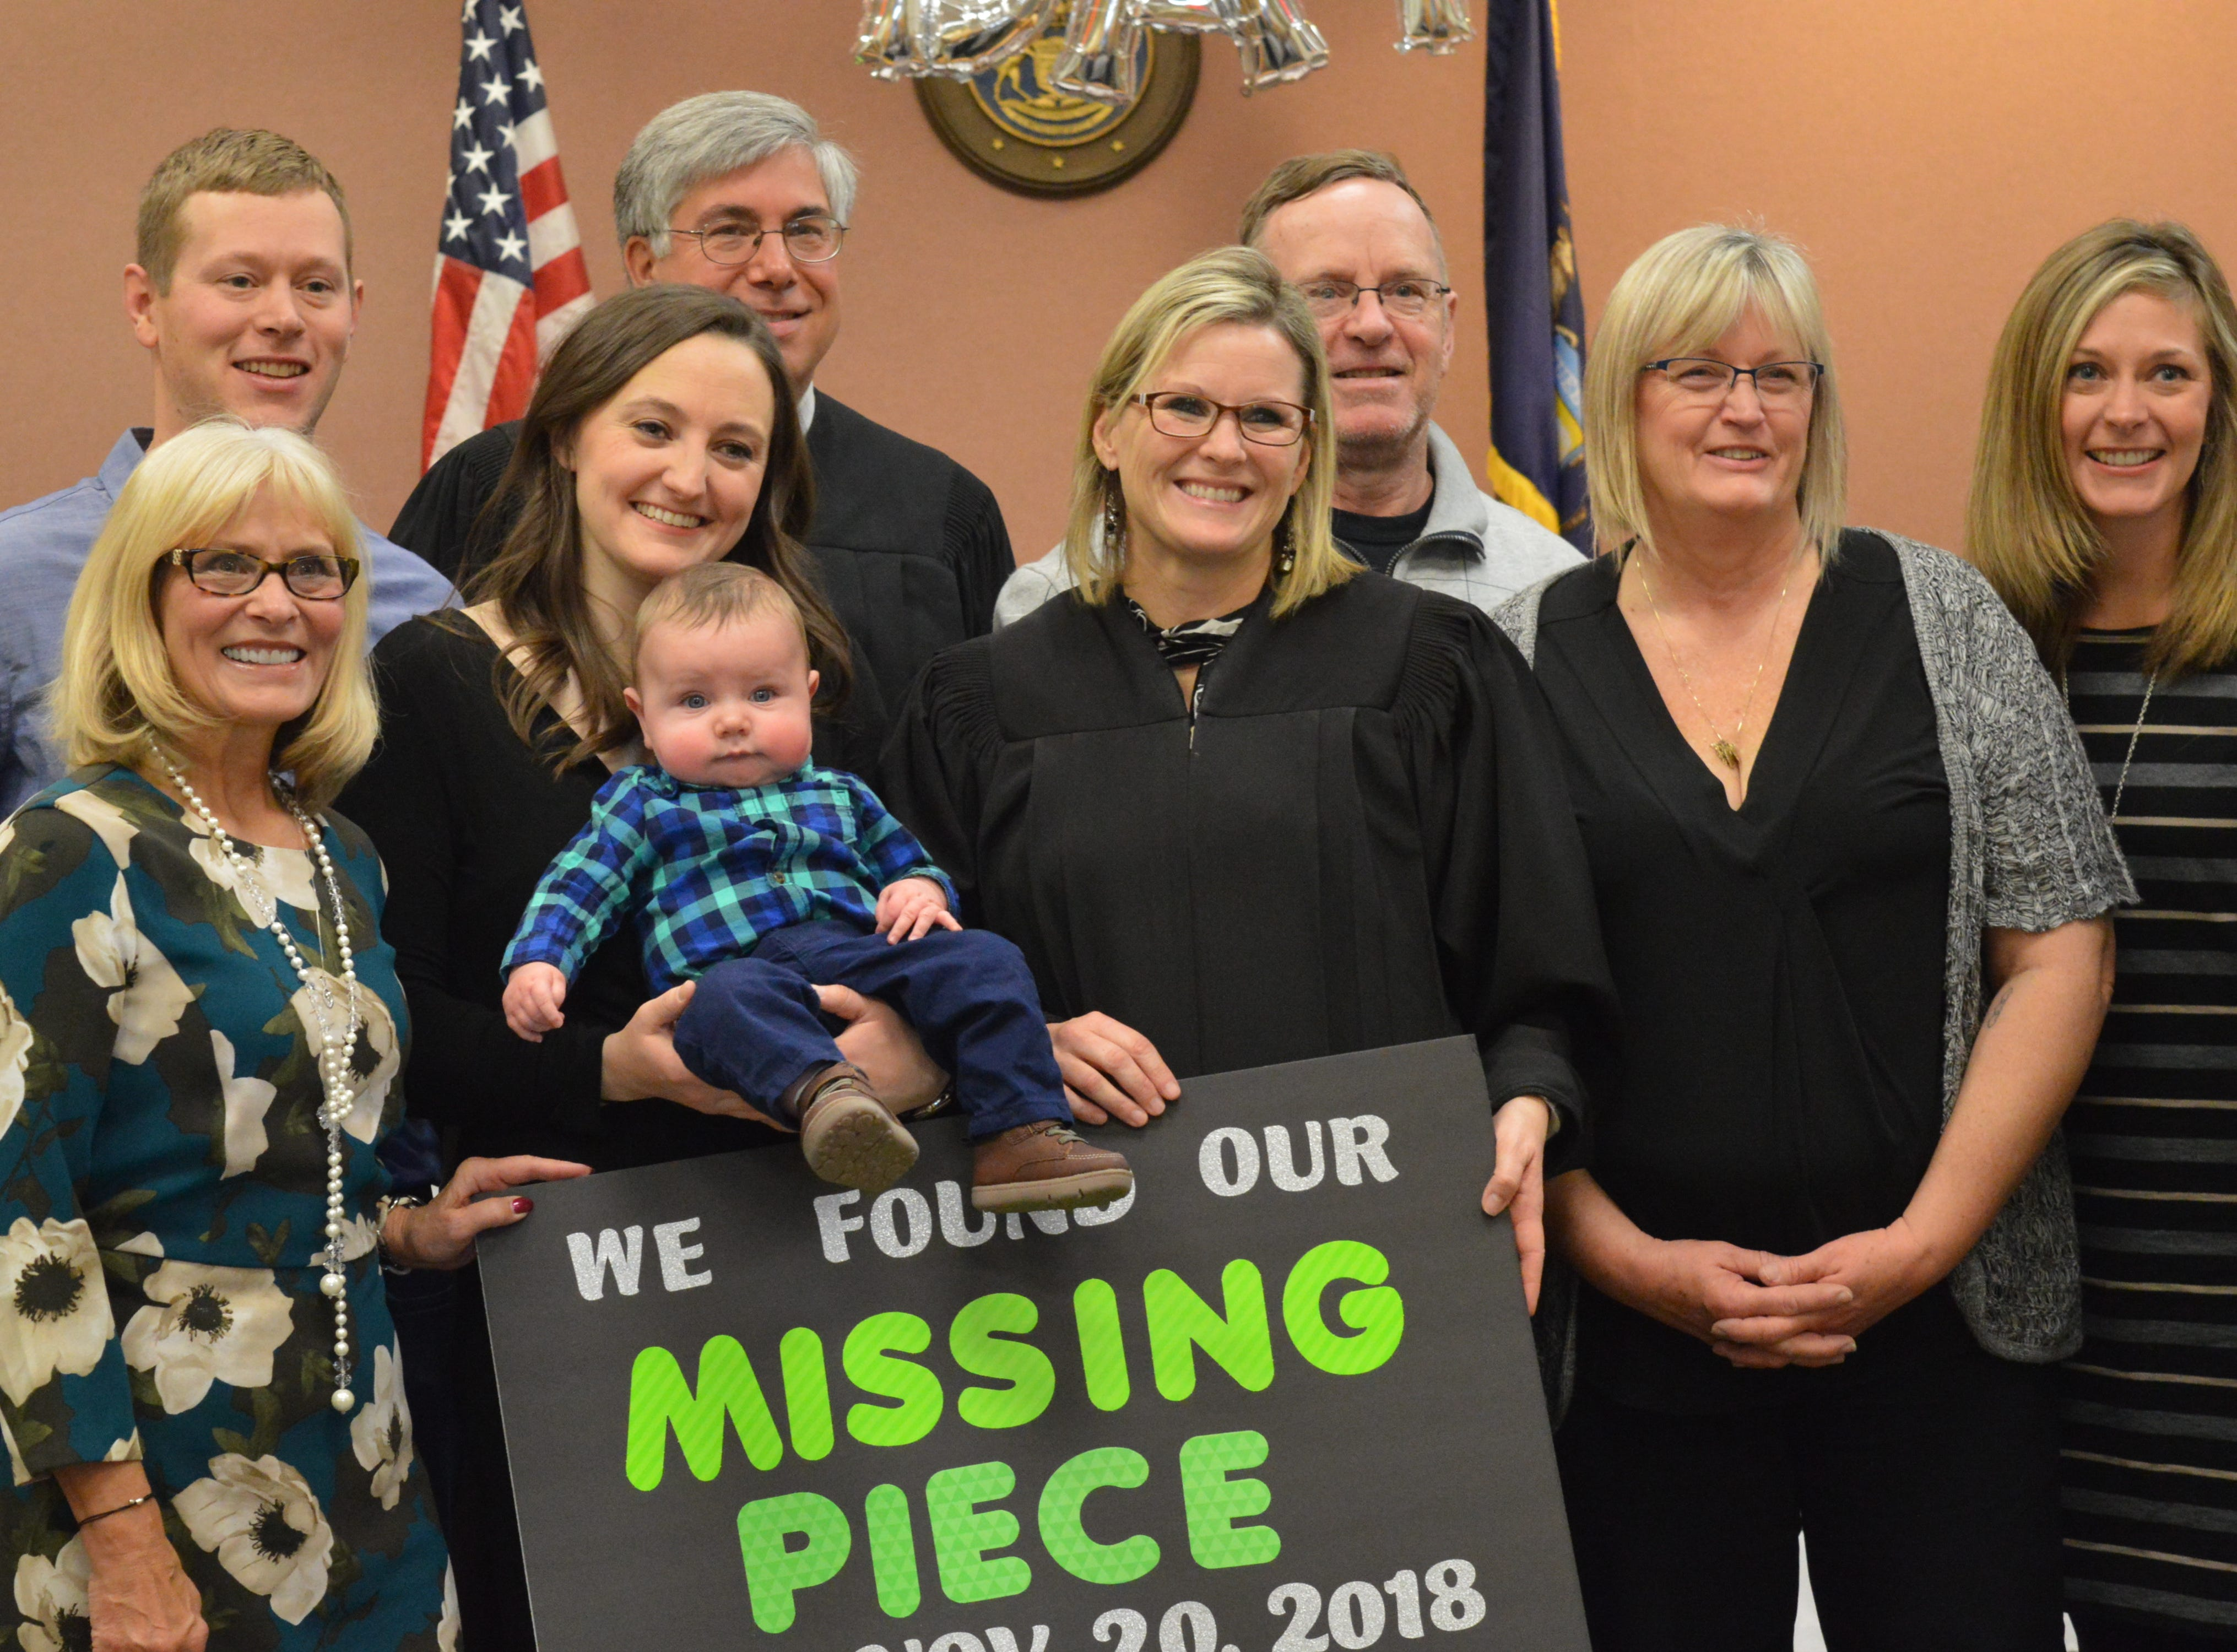 The Church family poses with Livingston County Chief Judge Miriam Cavanaugh and Michigan Court of Appeals Judge Christopher Murray after their son's adoption was finalized. He was adopted on Nov. 20, 2018.